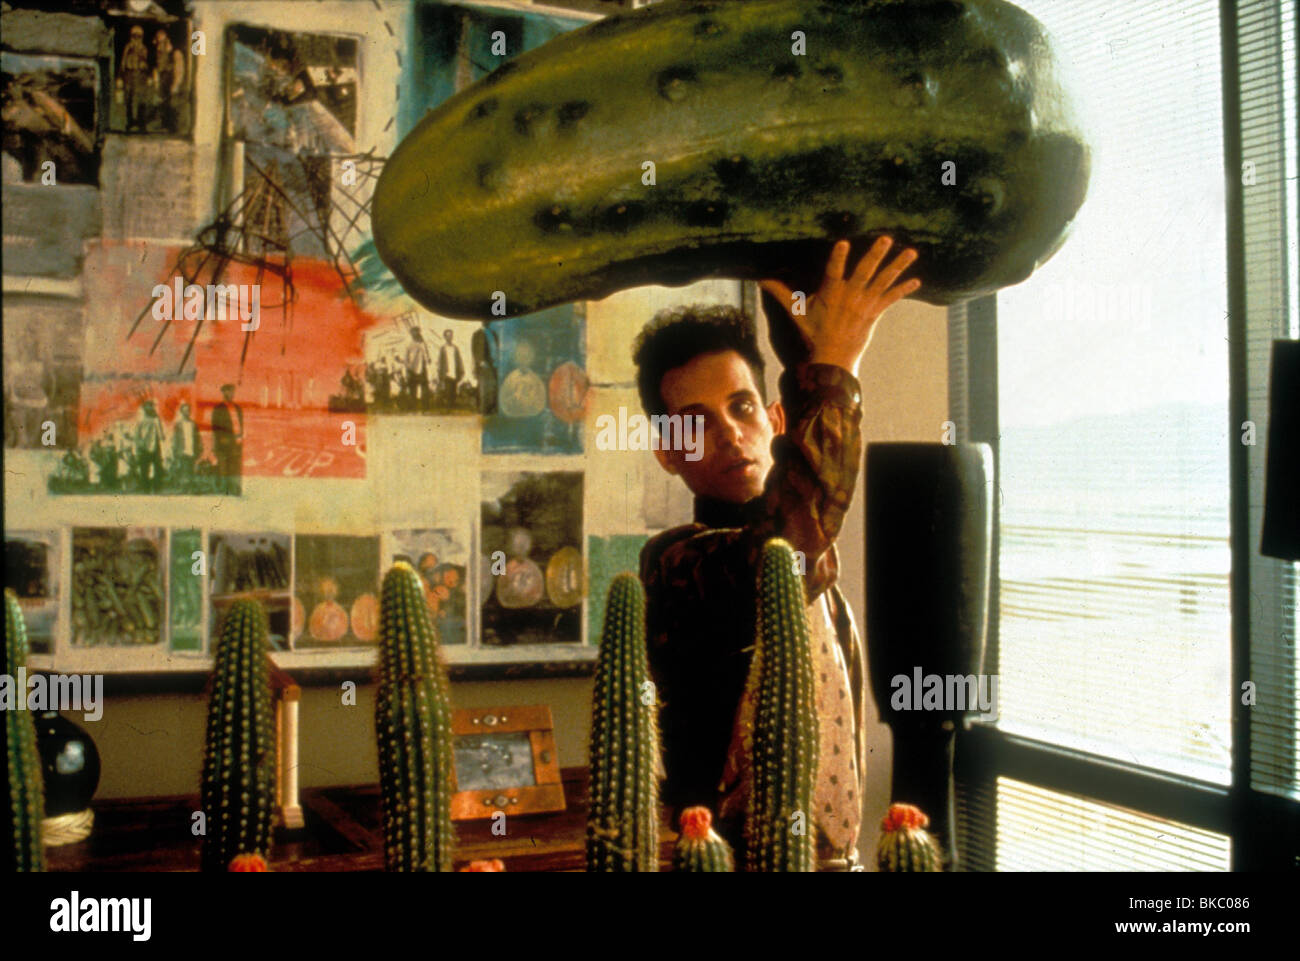 THE PICKLE -1993 BARRY MILLER - Stock Image